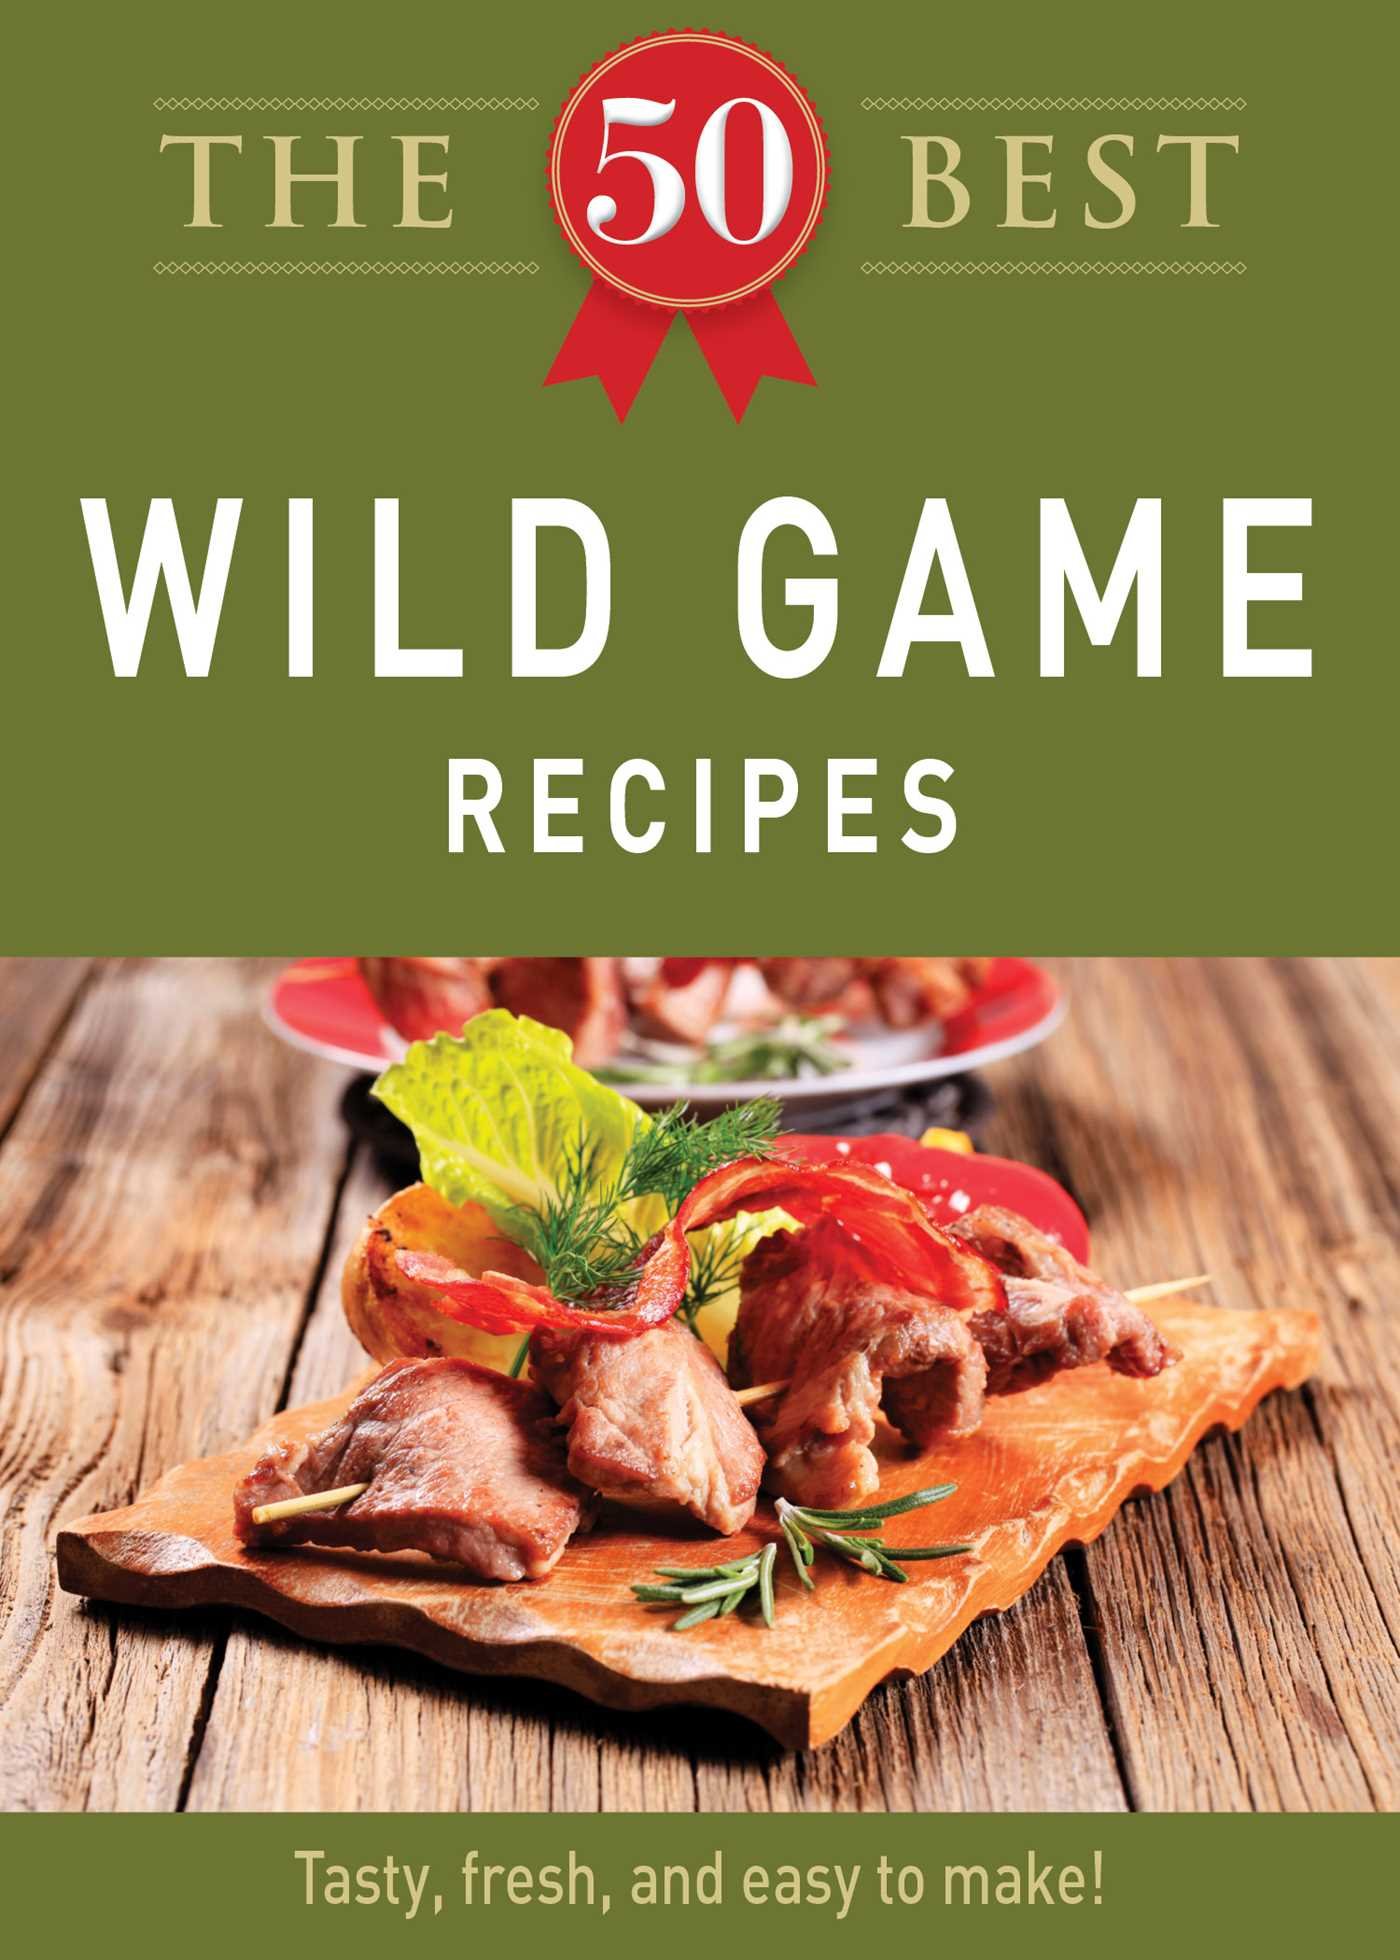 The 10 Best Wild Game Recipes eBook by Adams Media  Official